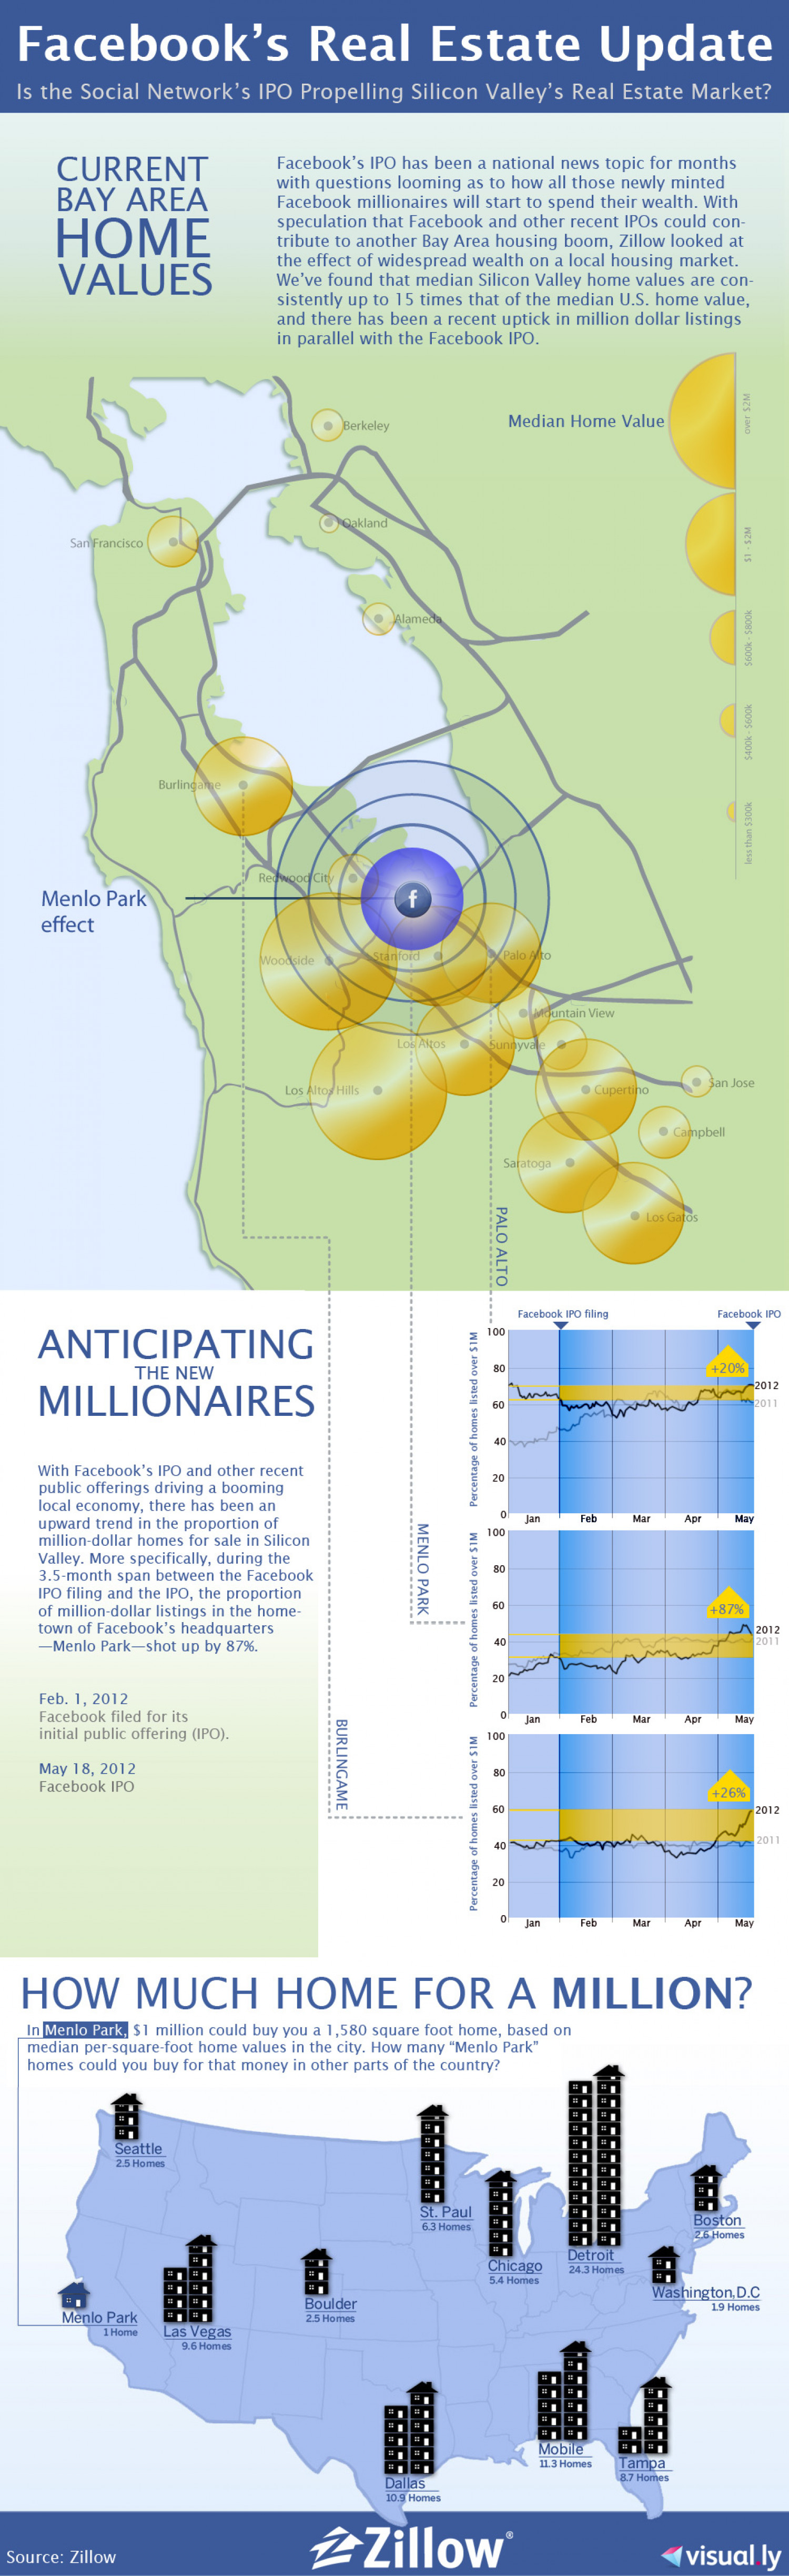 Facebook's Real Estate Update Infographic